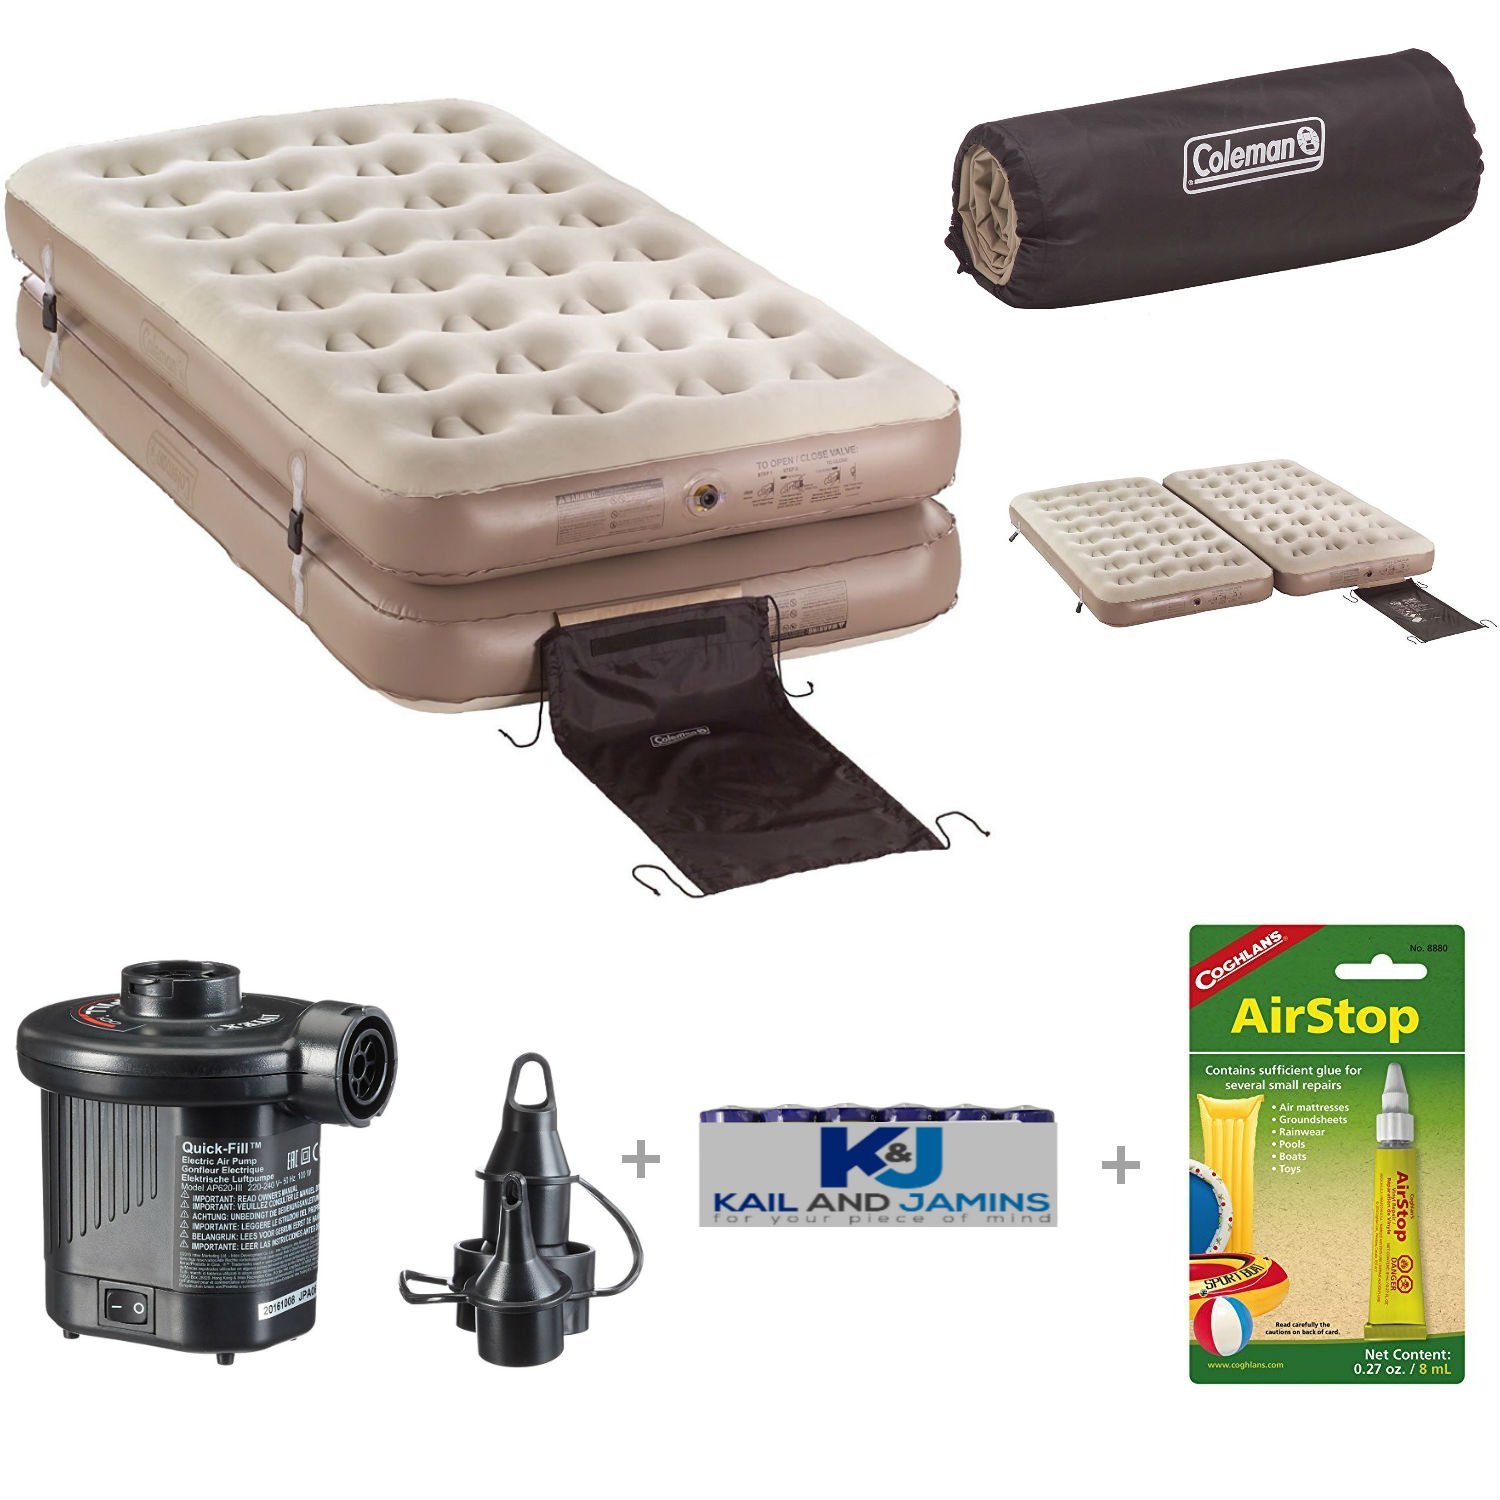 Amazon.com : Inflatable Coleman Air mattress + Air pump and Repair Kit By  K&J's - Serves as a Twin Double Bed, Single High King Bed, as you choose,  ...